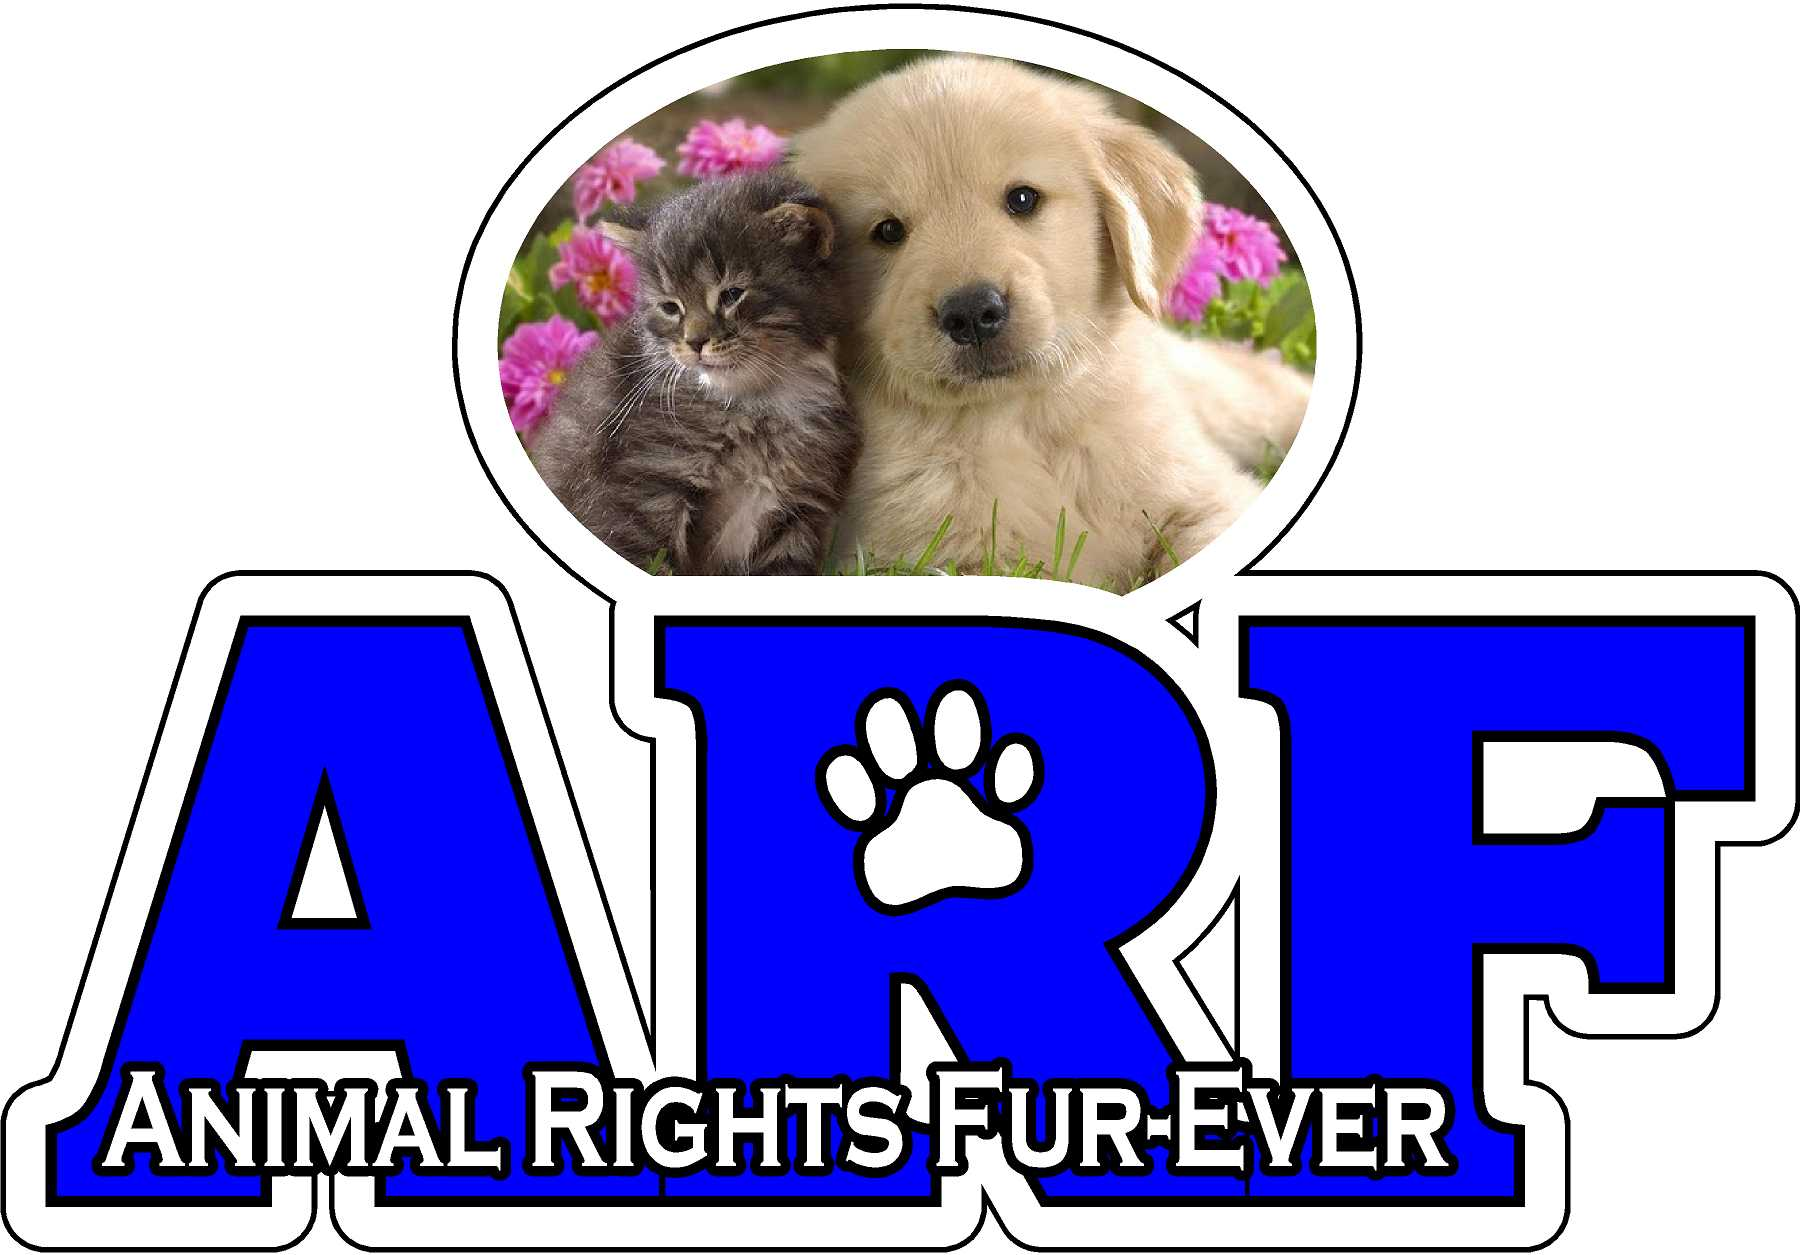 ARF, Inc. (Animal Rights Fur-ever)